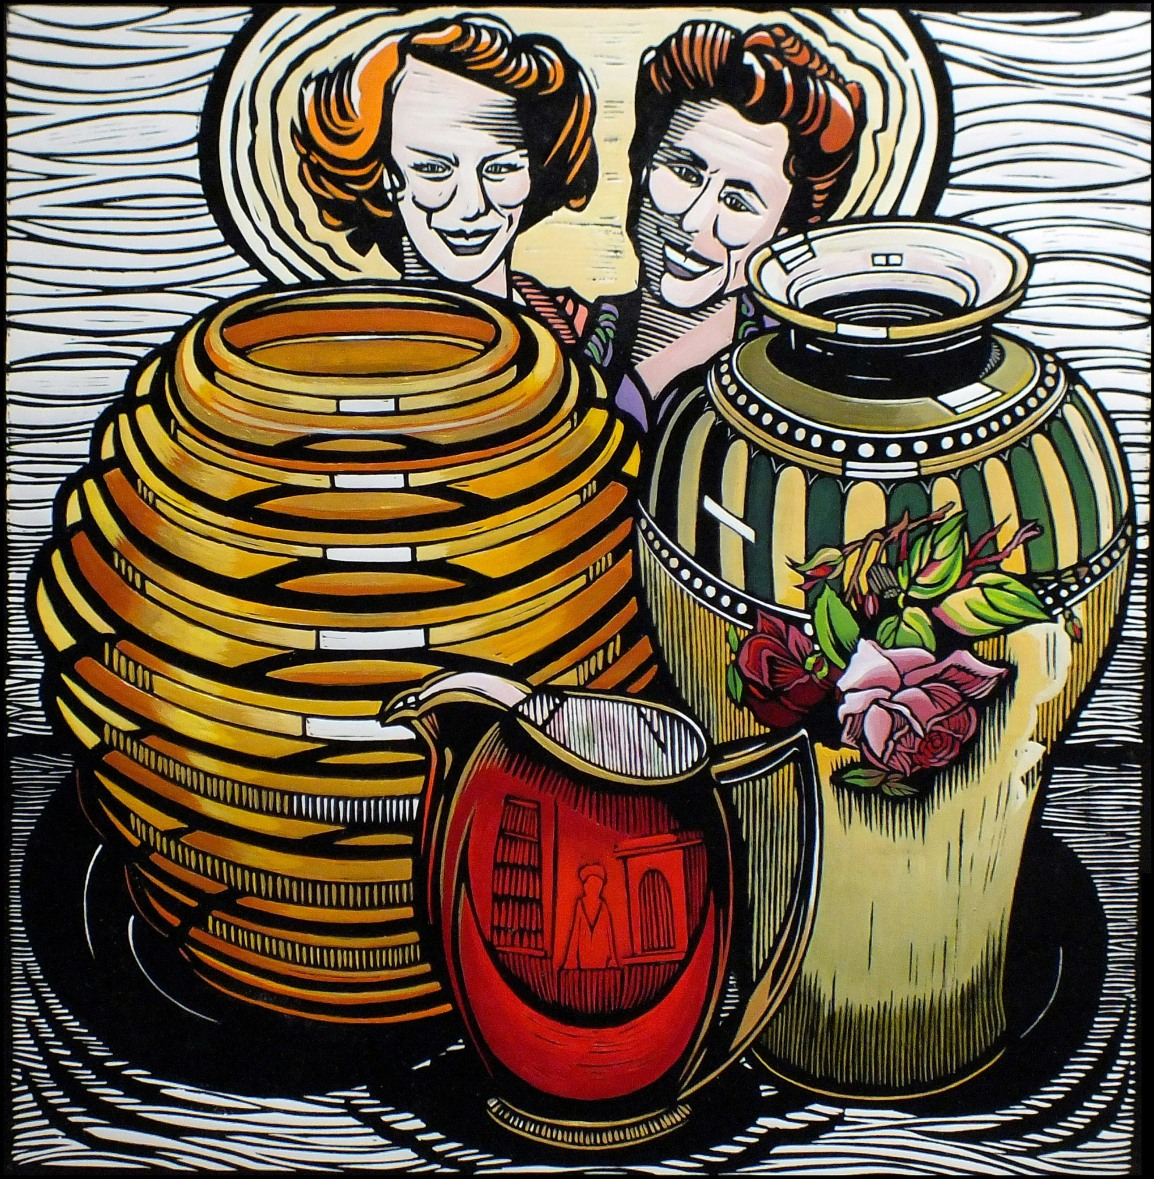 Pat and Joy's Treasures | 70cm w x 70cm h | Not for sale